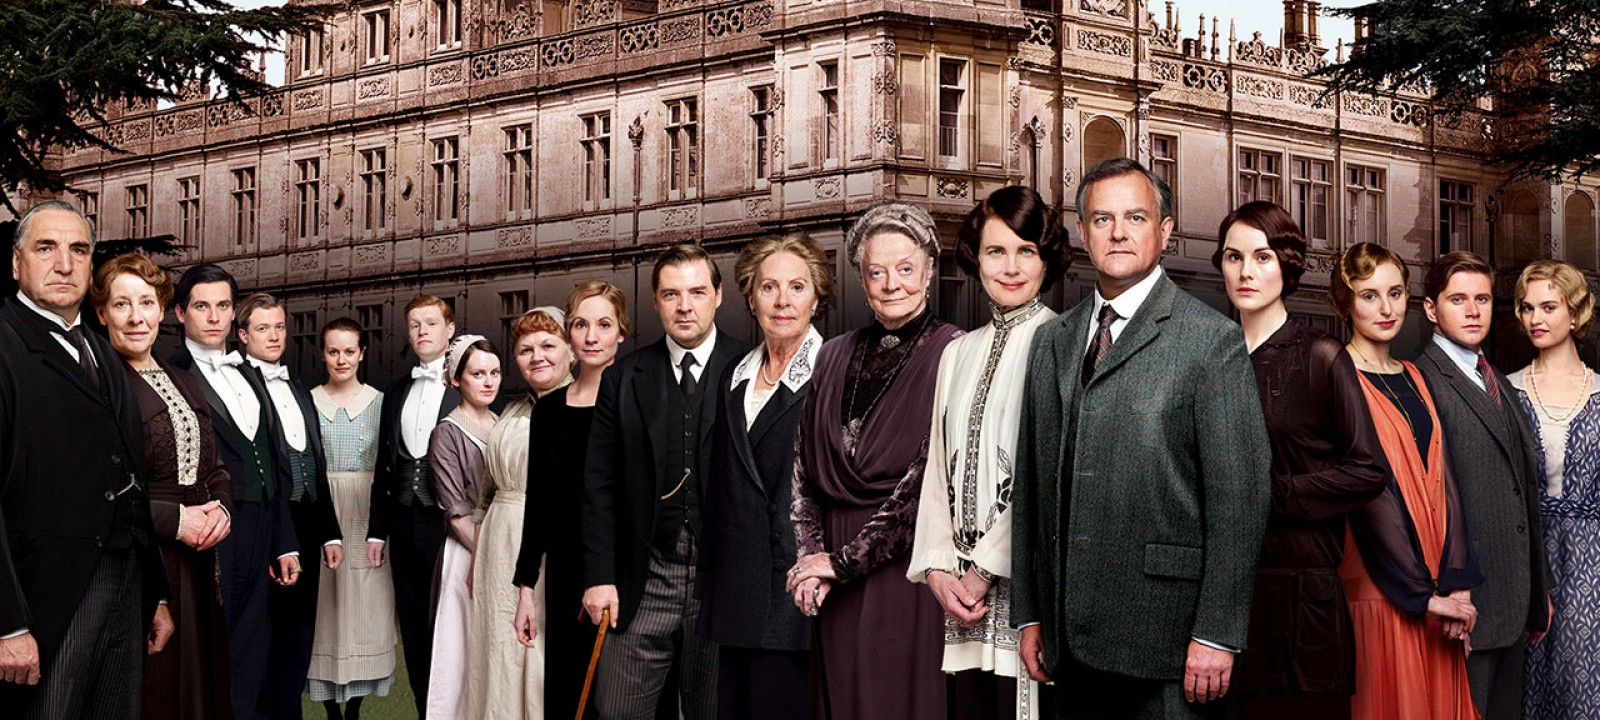 1280x720_downtonabbey_s4_cast